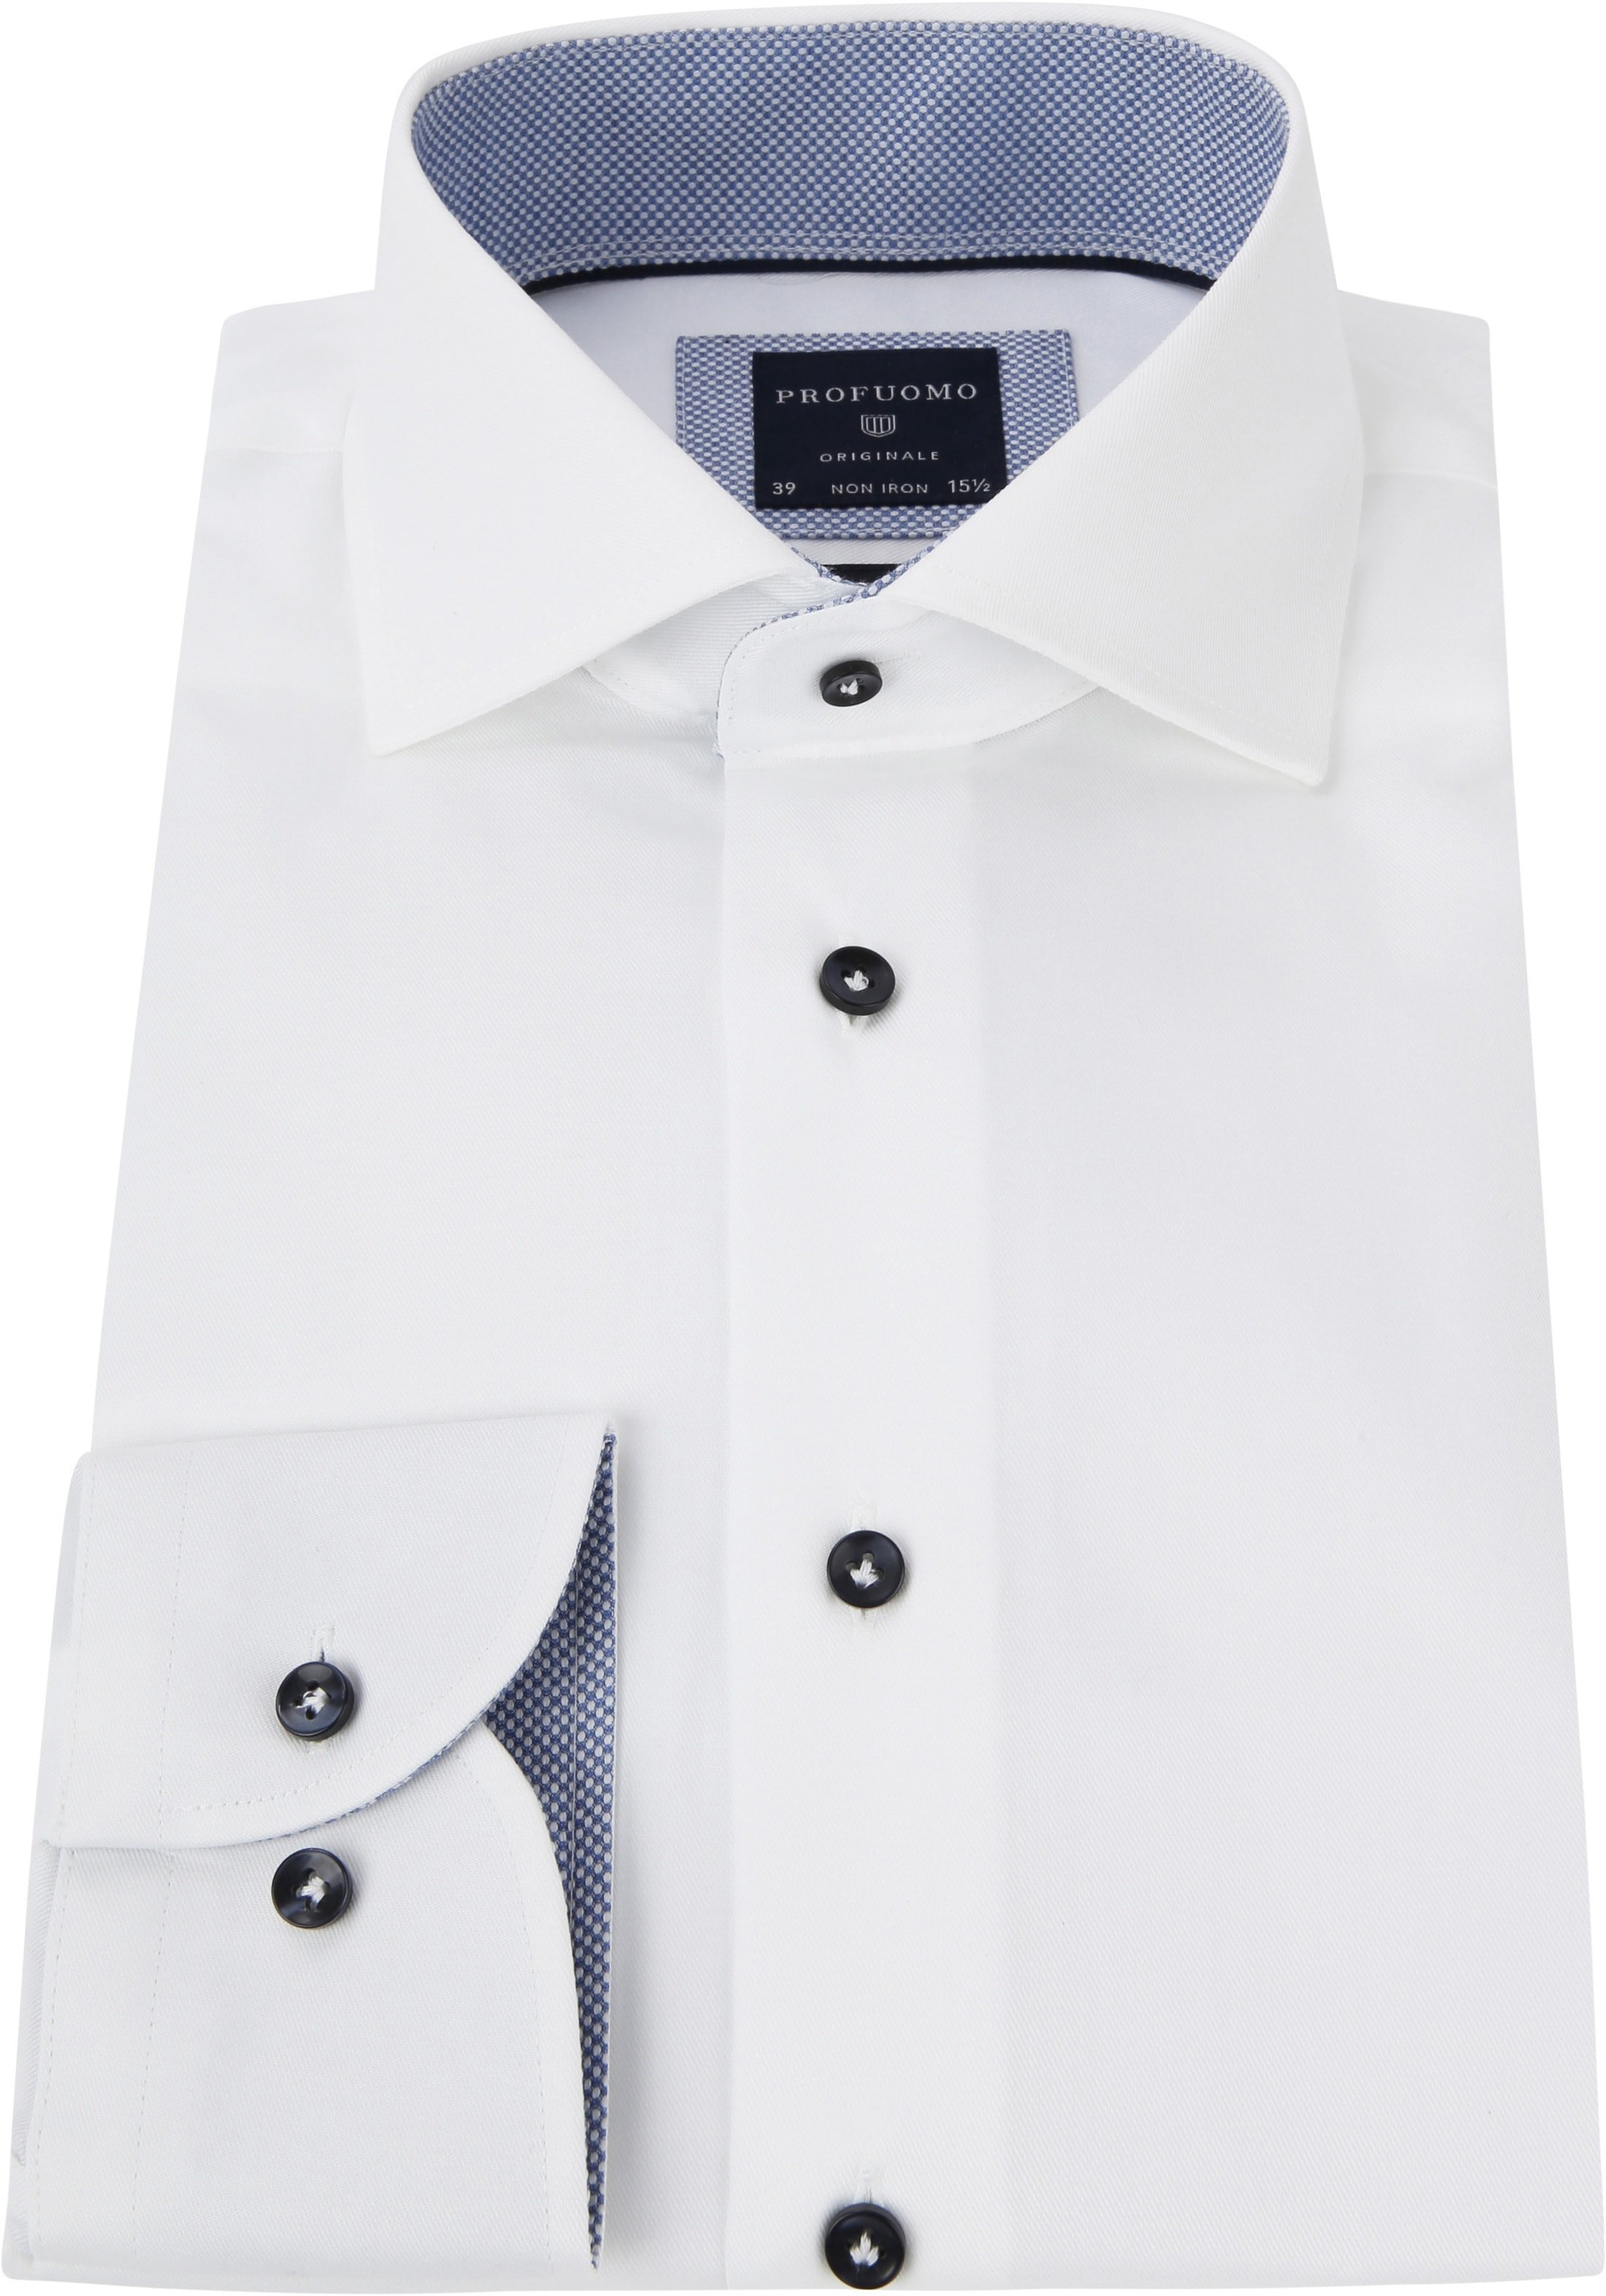 Profuomo Shirt White Fine Twill CAW photo 2